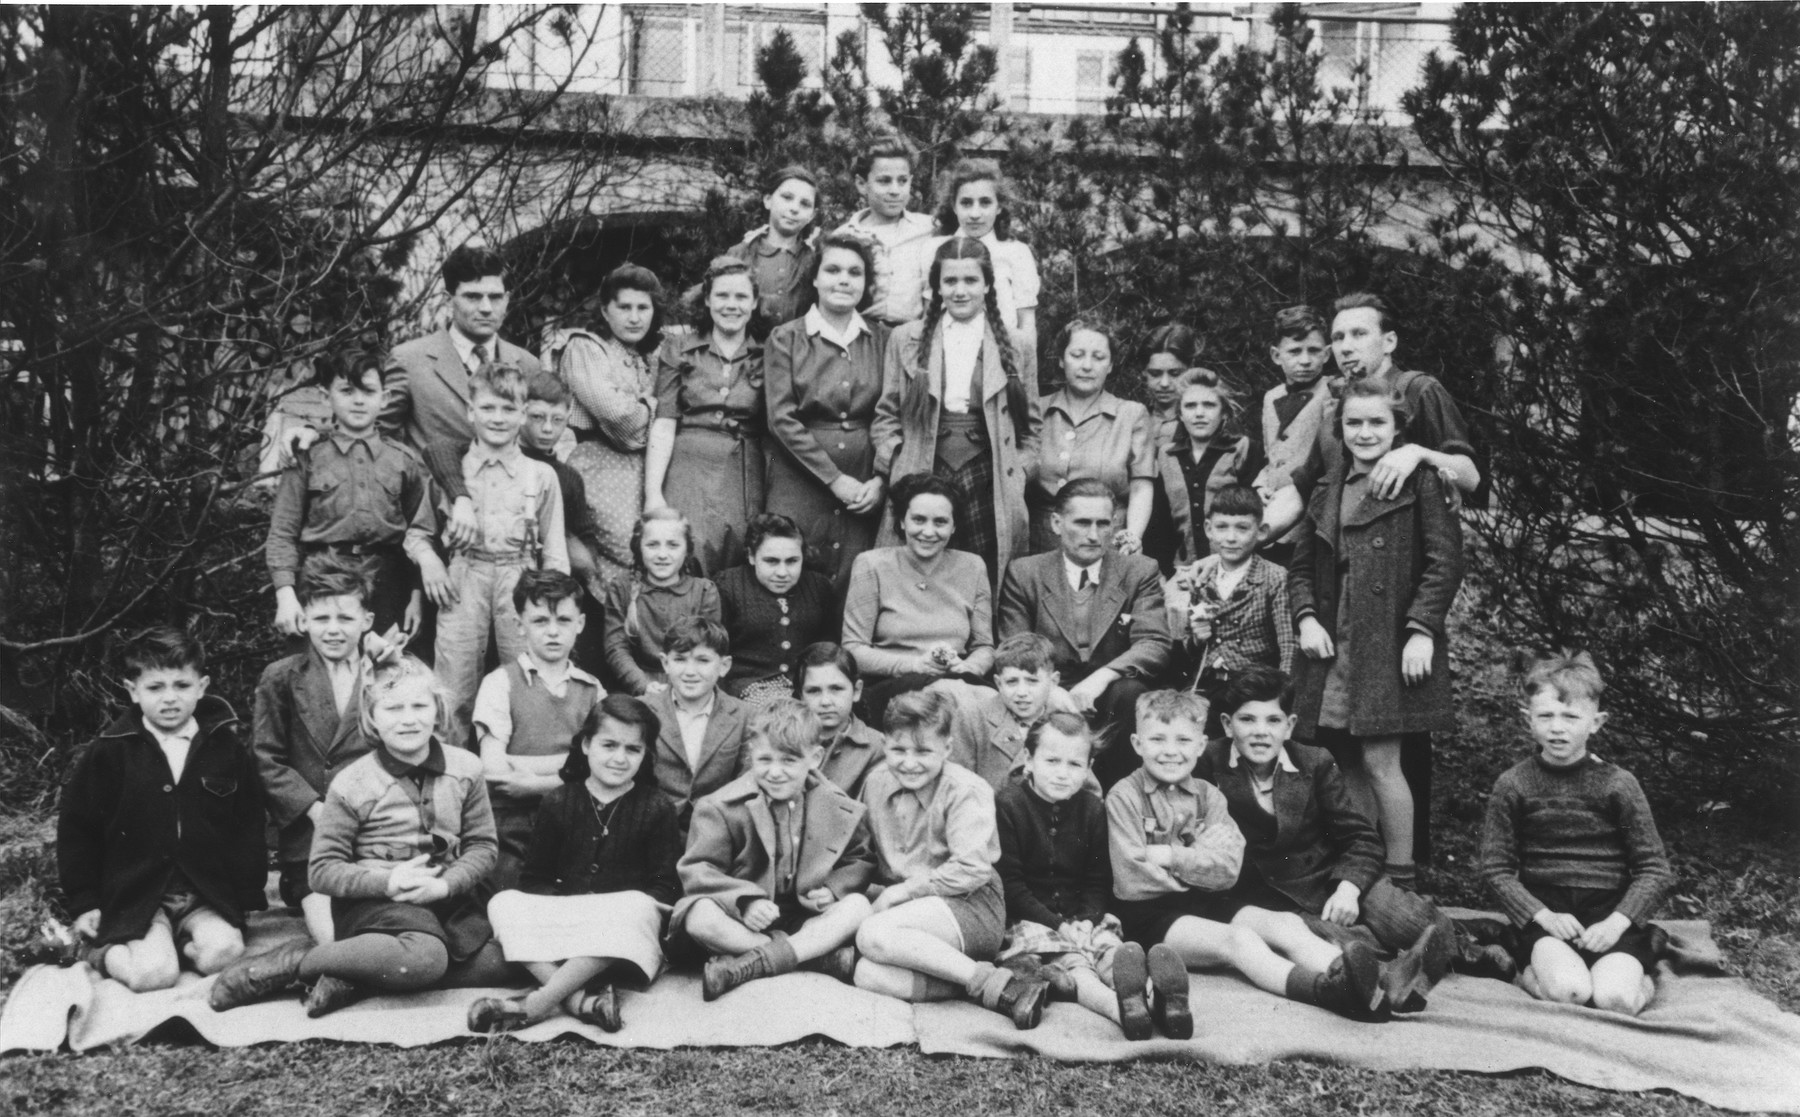 Group portrait of DP children at the Leitendorf children's home.